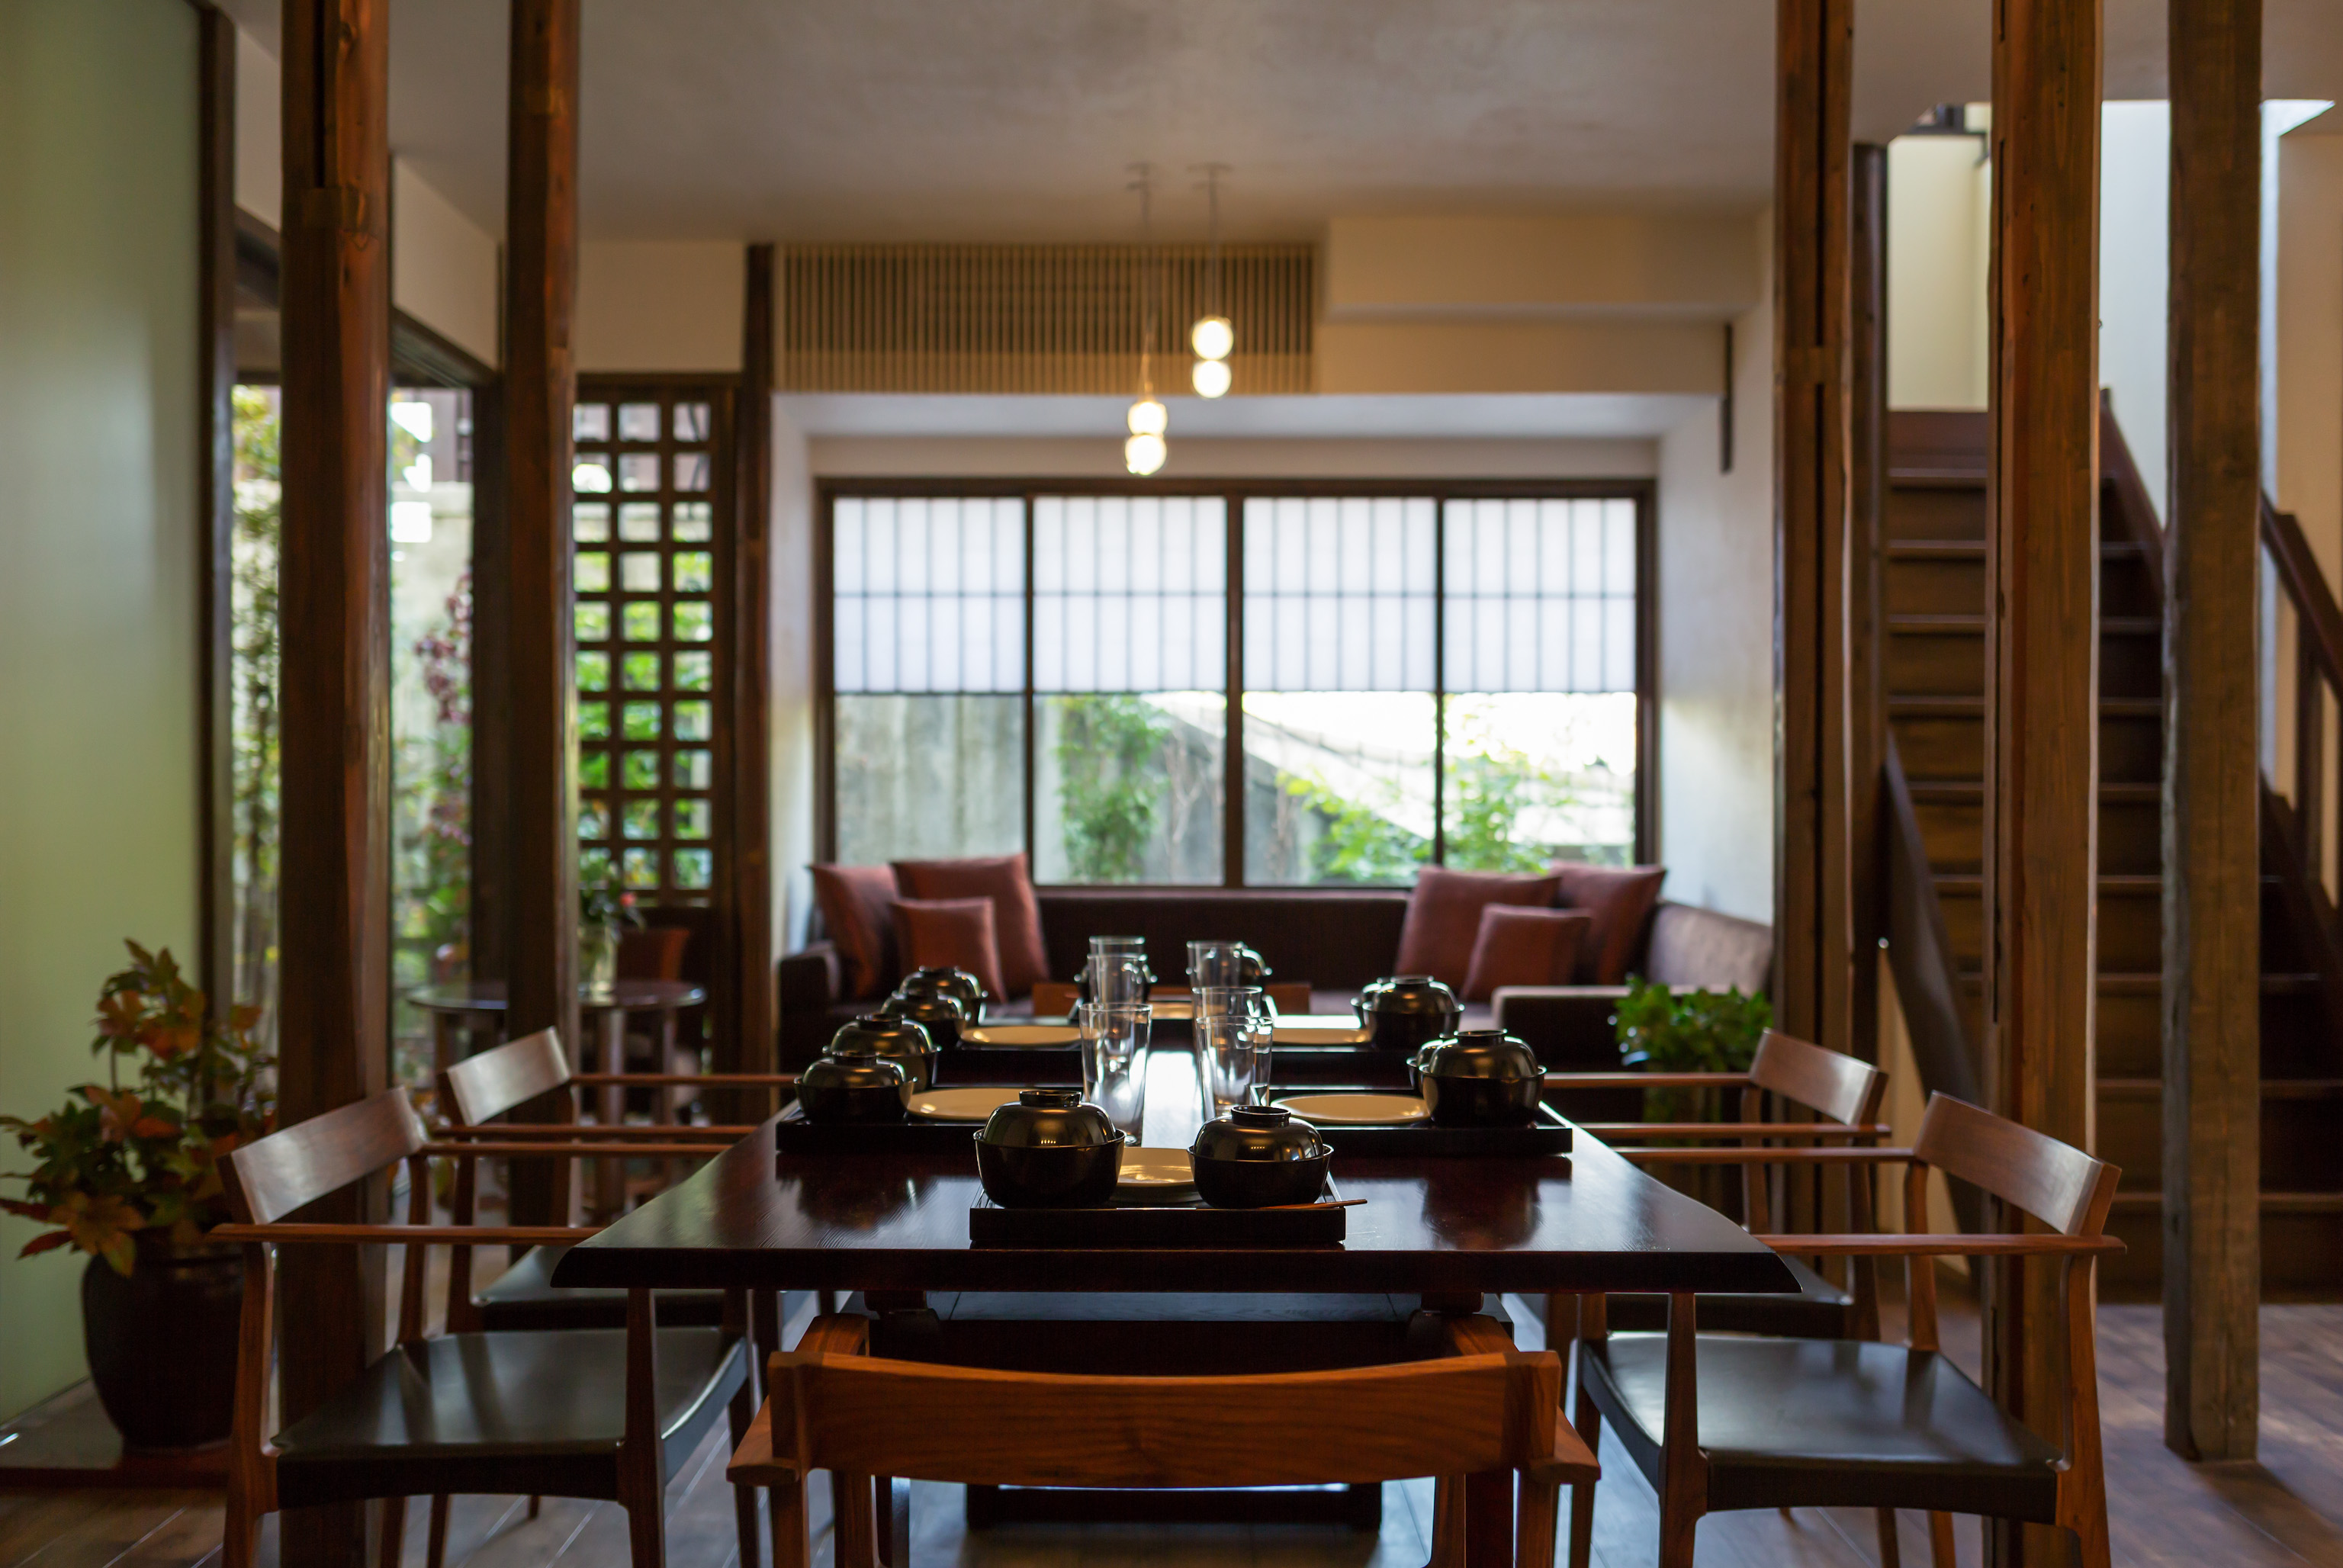 Spacious dining room and kitchen, 48㎡.